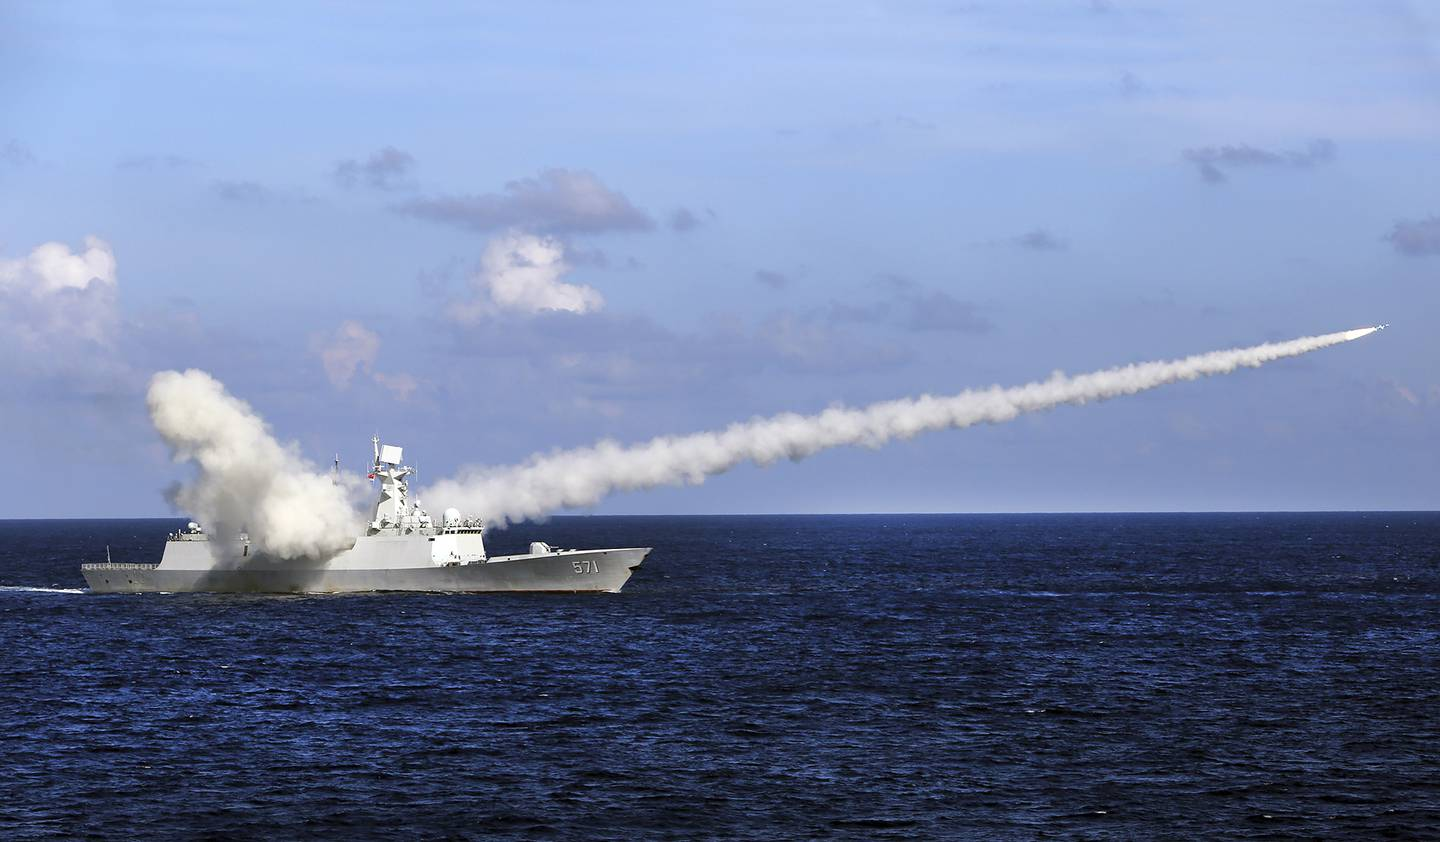 In this July 8, 2016, file photo released by Xinhua News Agency, Chinese missile frigate Yuncheng launches an anti-ship missile during a military exercise in the waters near south China's Hainan Island and Paracel Islands.